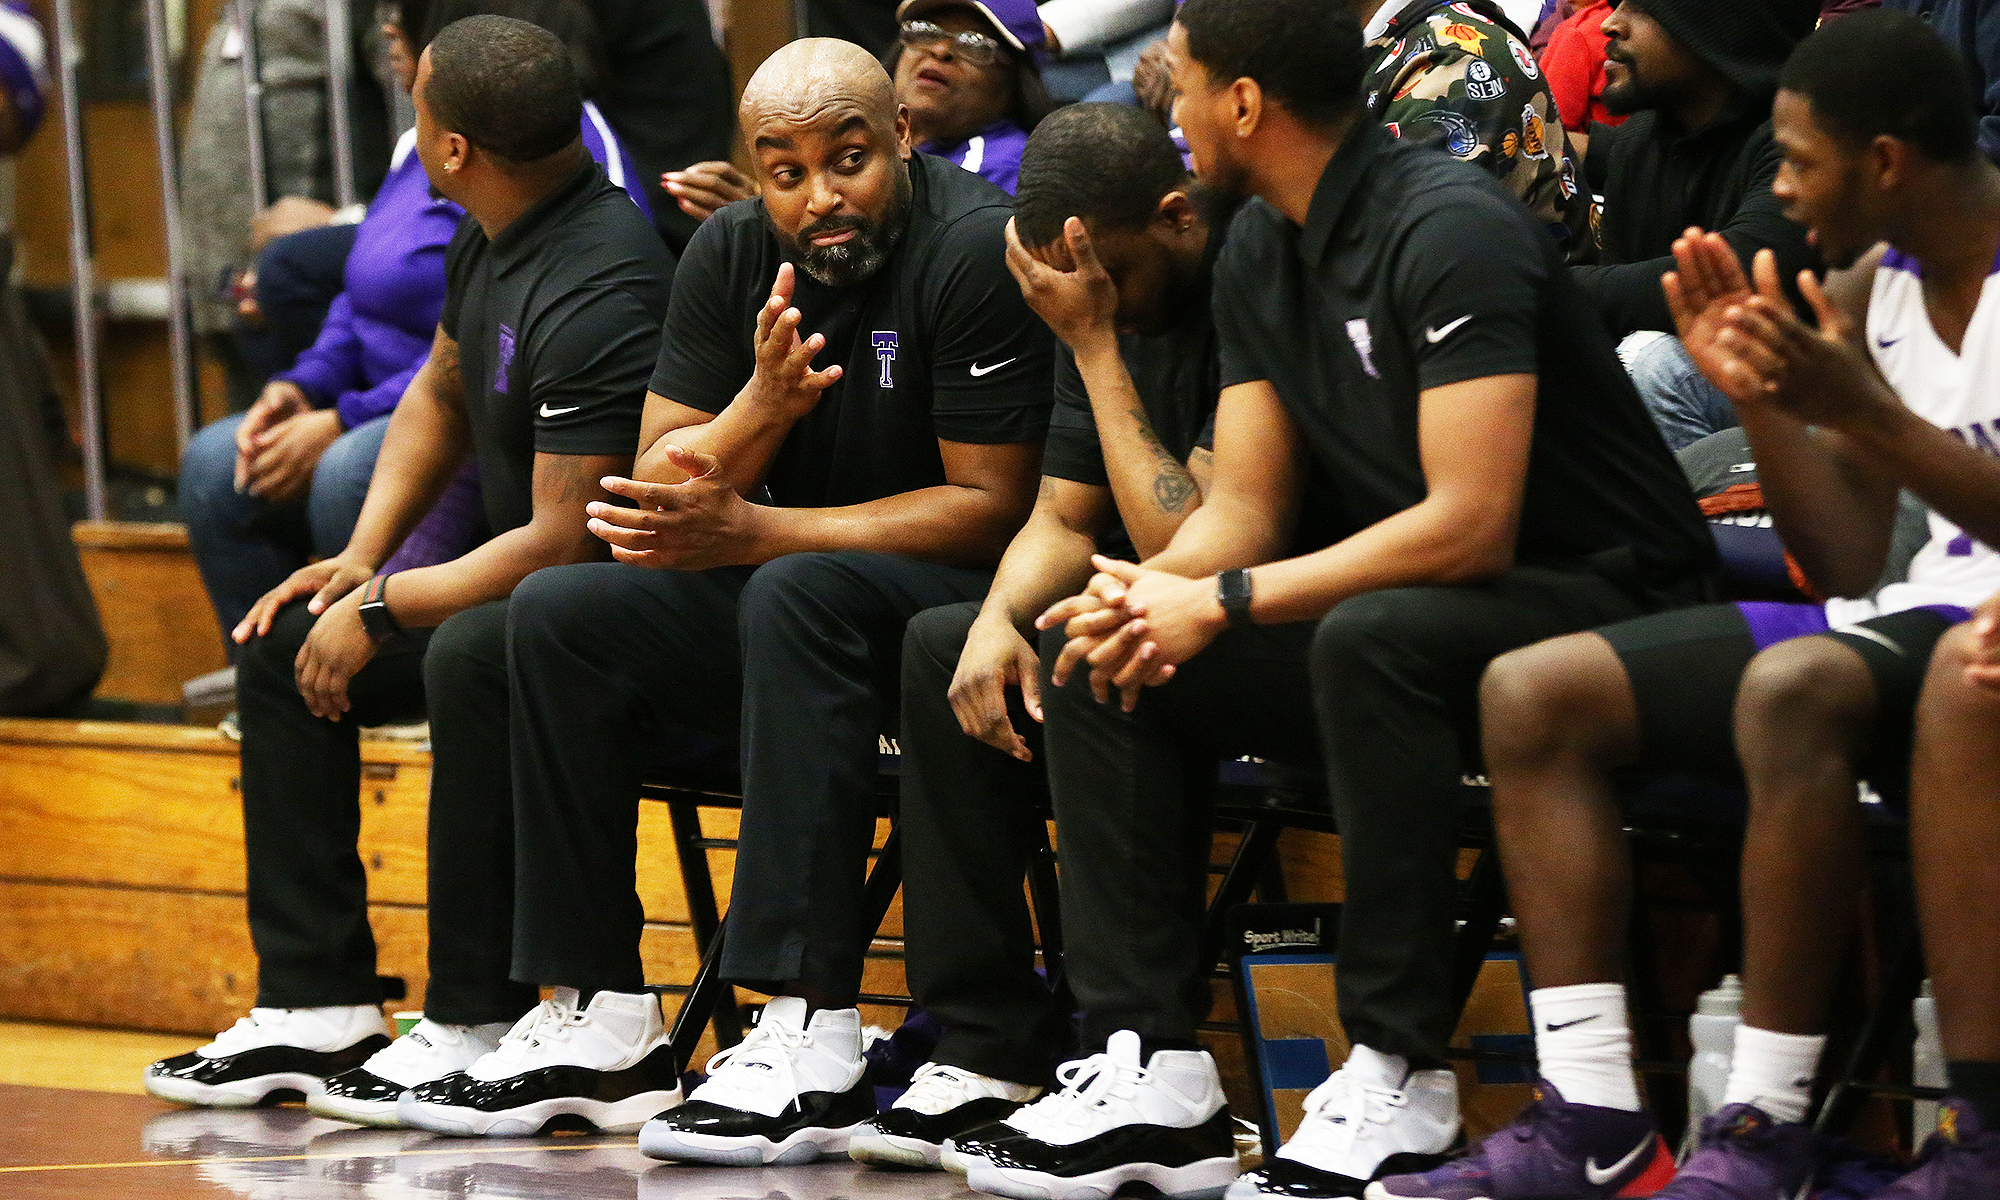 Thornton coach Tai Streets as the clock winds down on the Wildcats' victory over Homewood-Flossmoor.